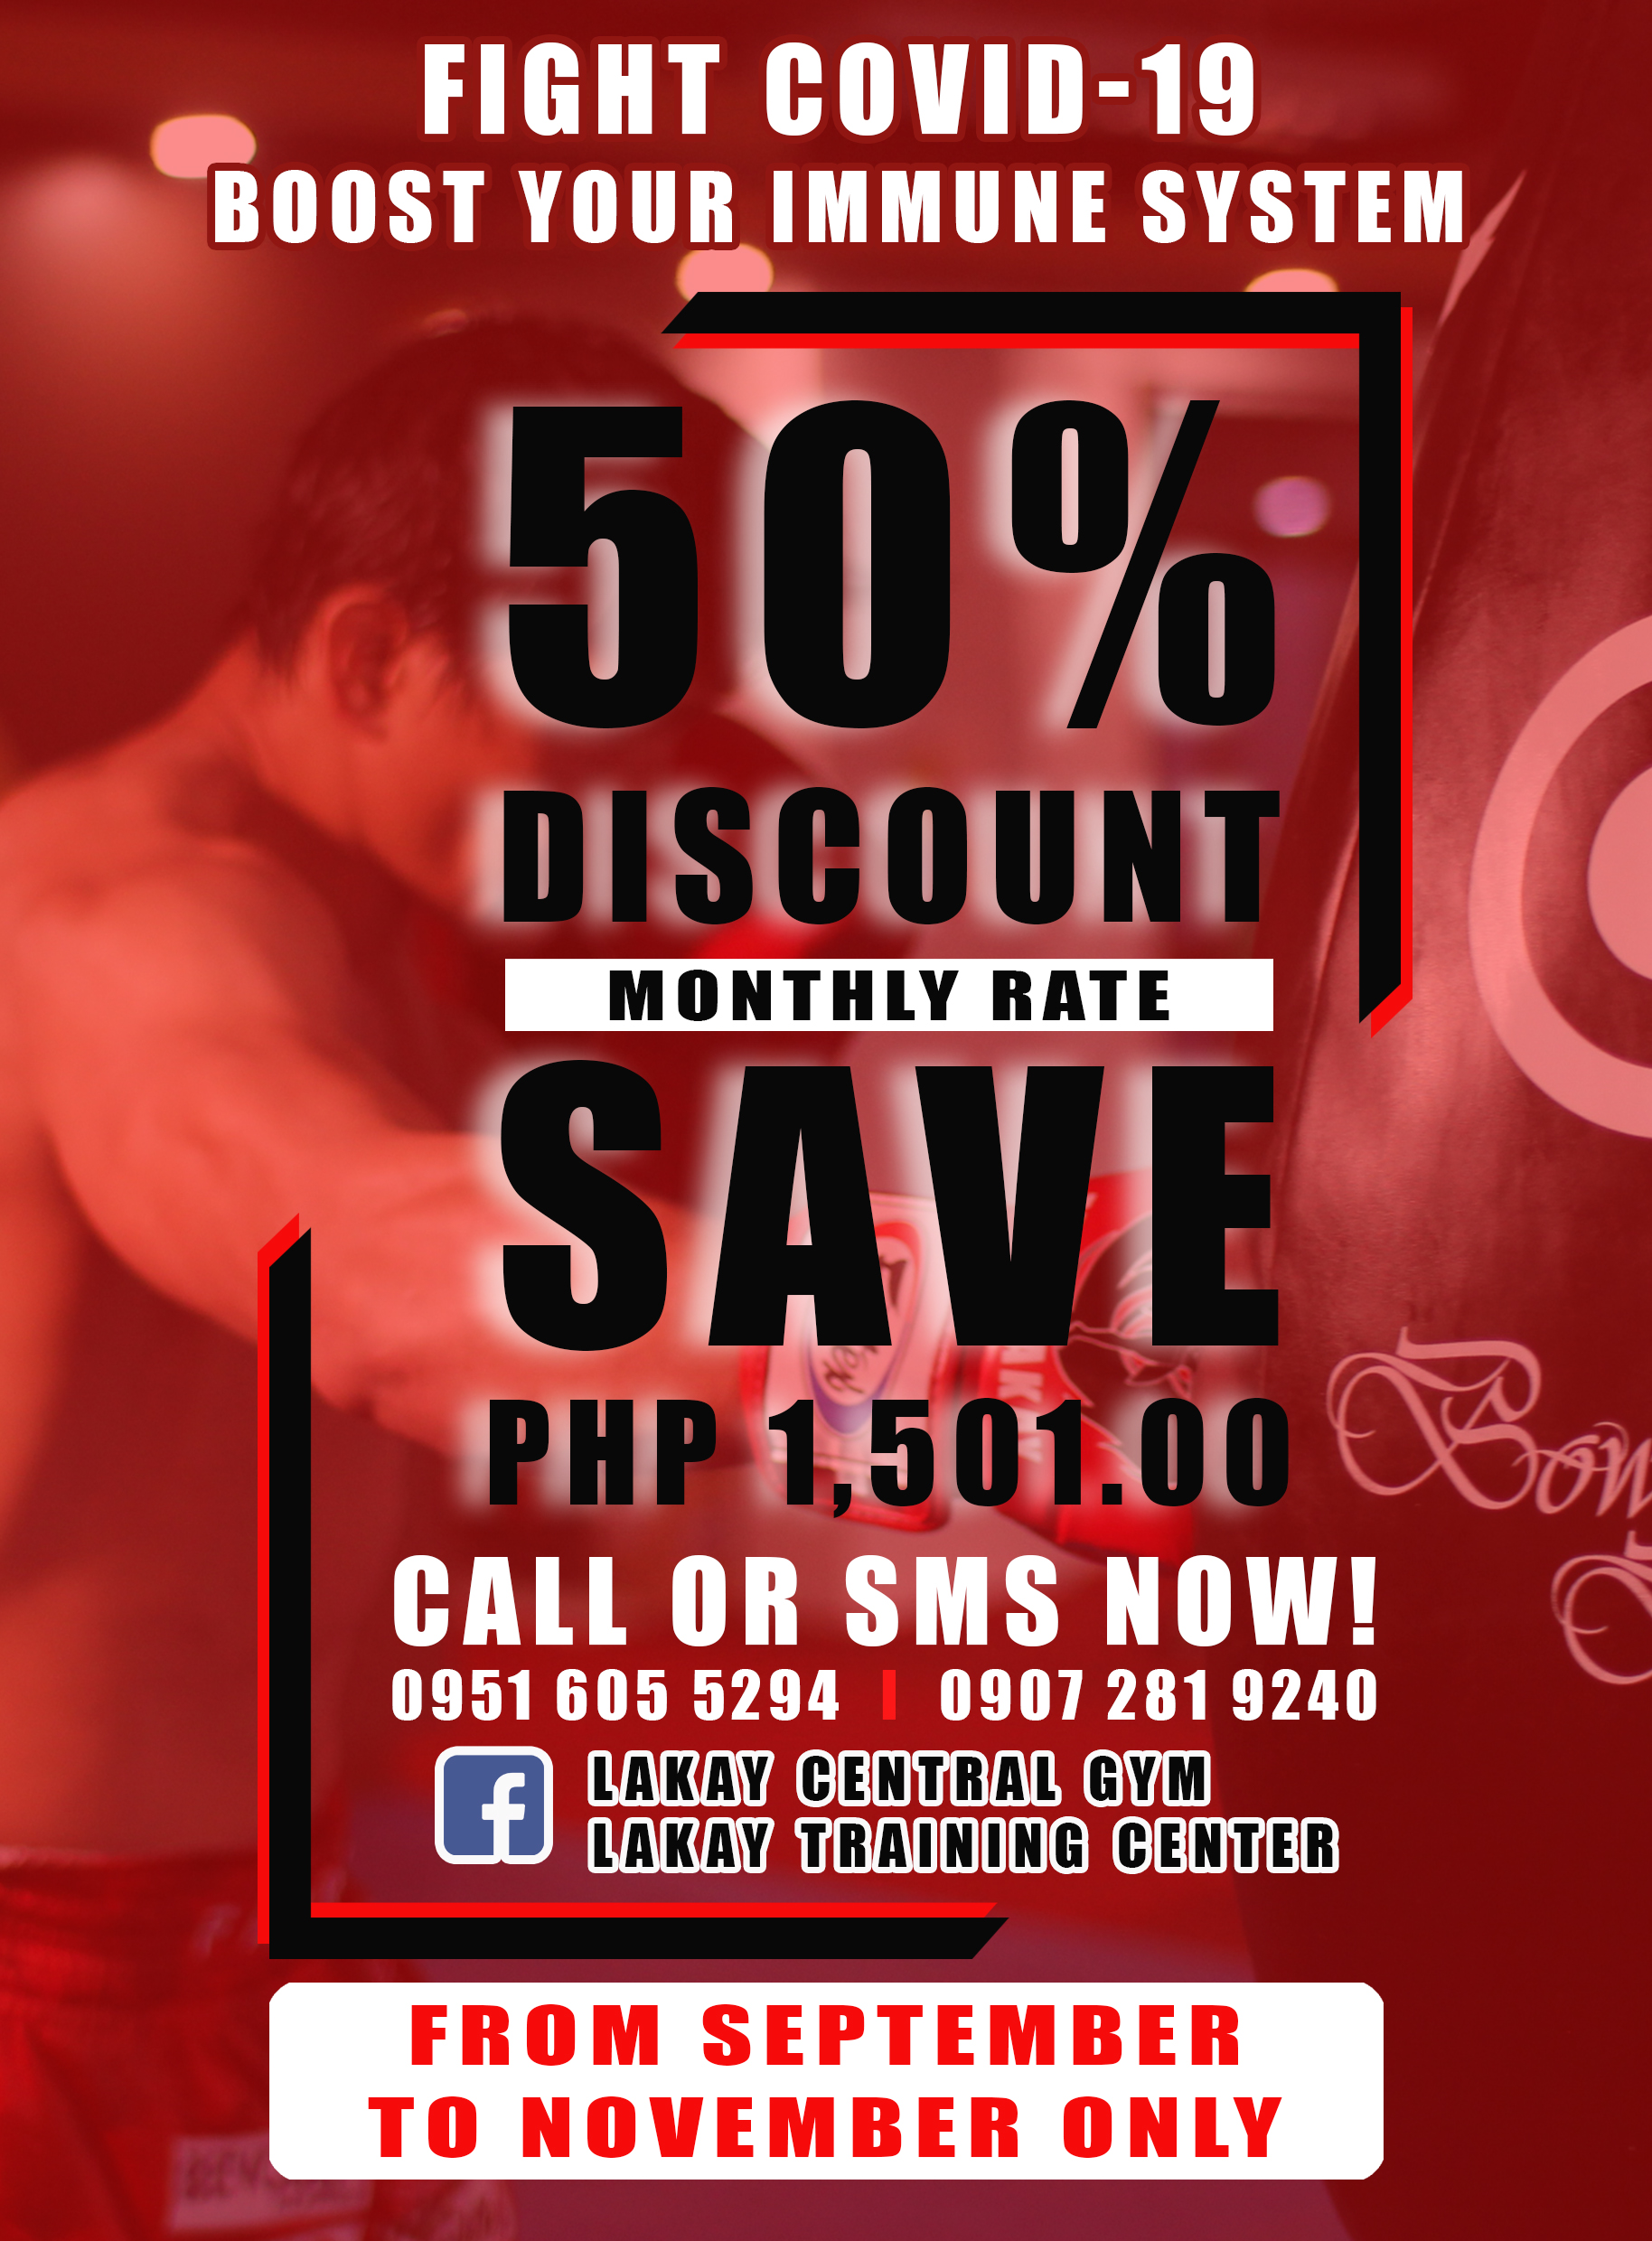 Enroll in our Team Lakay Group Class. 50% Discount!